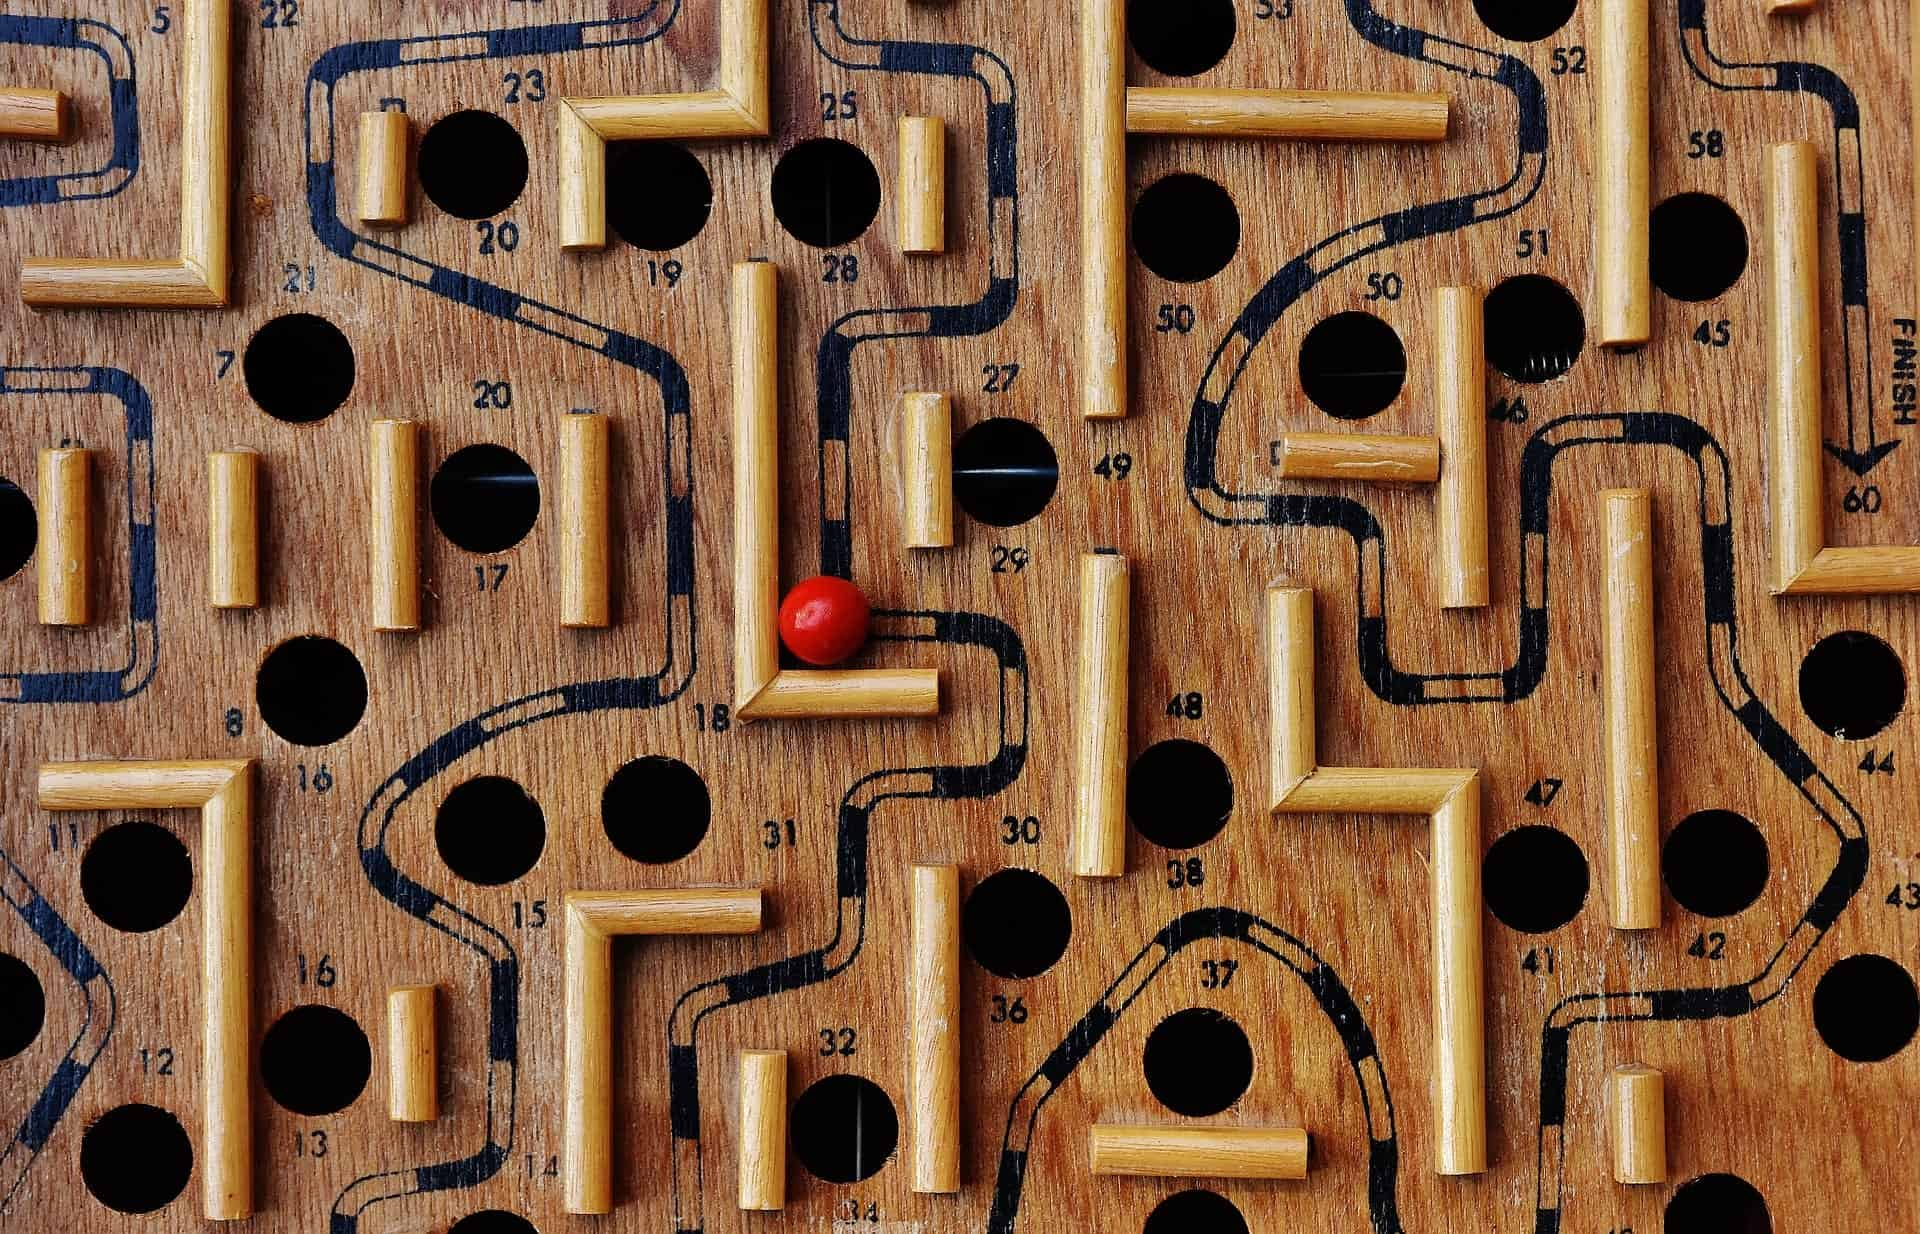 How Complex Should Your Segmentation Be?